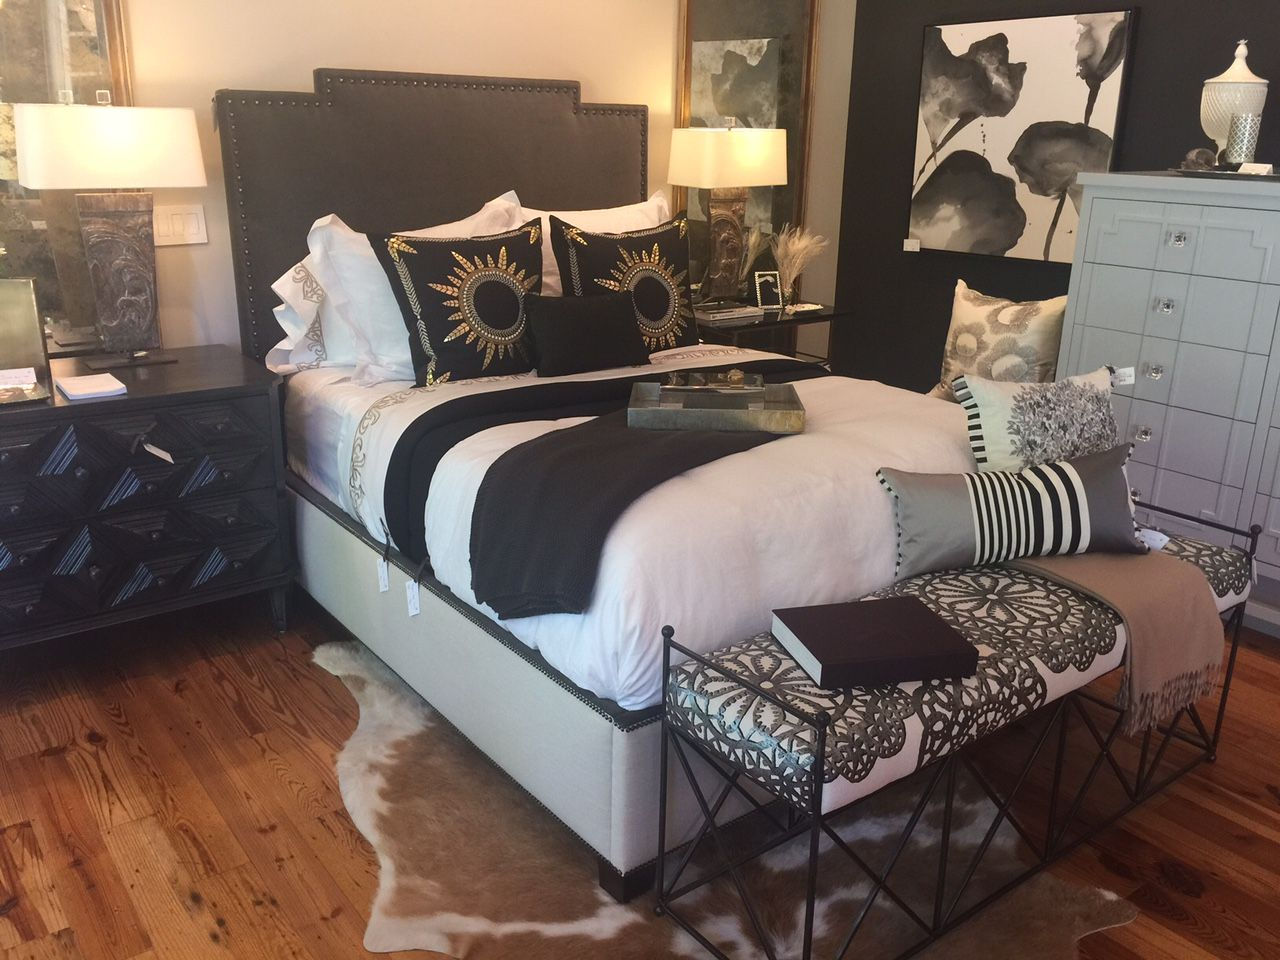 Custom upholstered bed with nailheads designed by Vivid